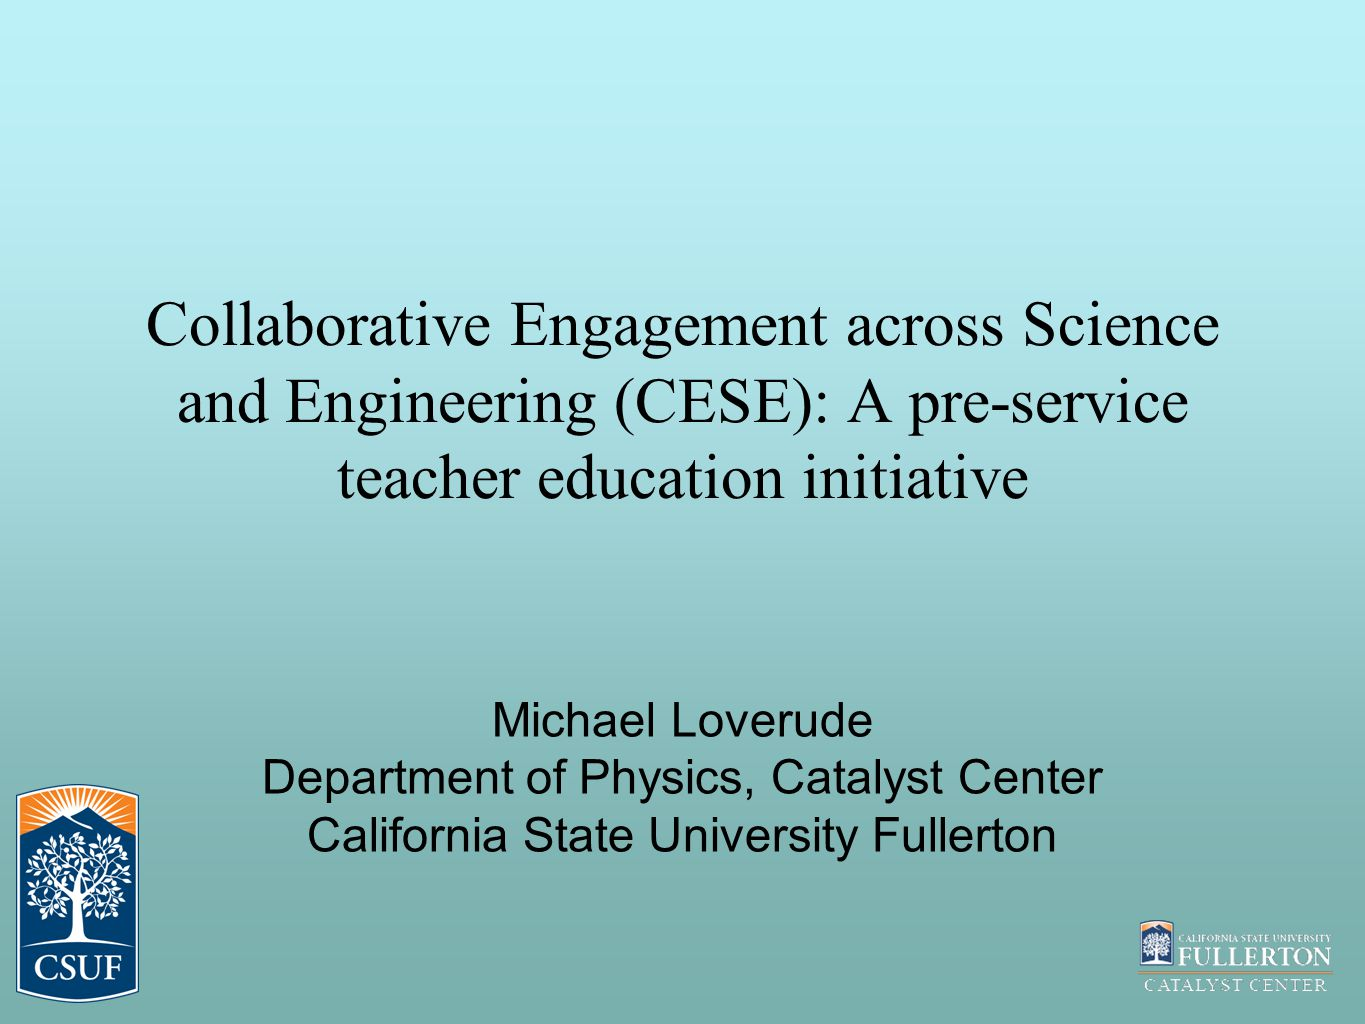 Collaborative Engagement across Science and Engineering (CESE): A pre-service teacher education initiative Michael Loverude Department of Physics, Catalyst Center California State University Fullerton